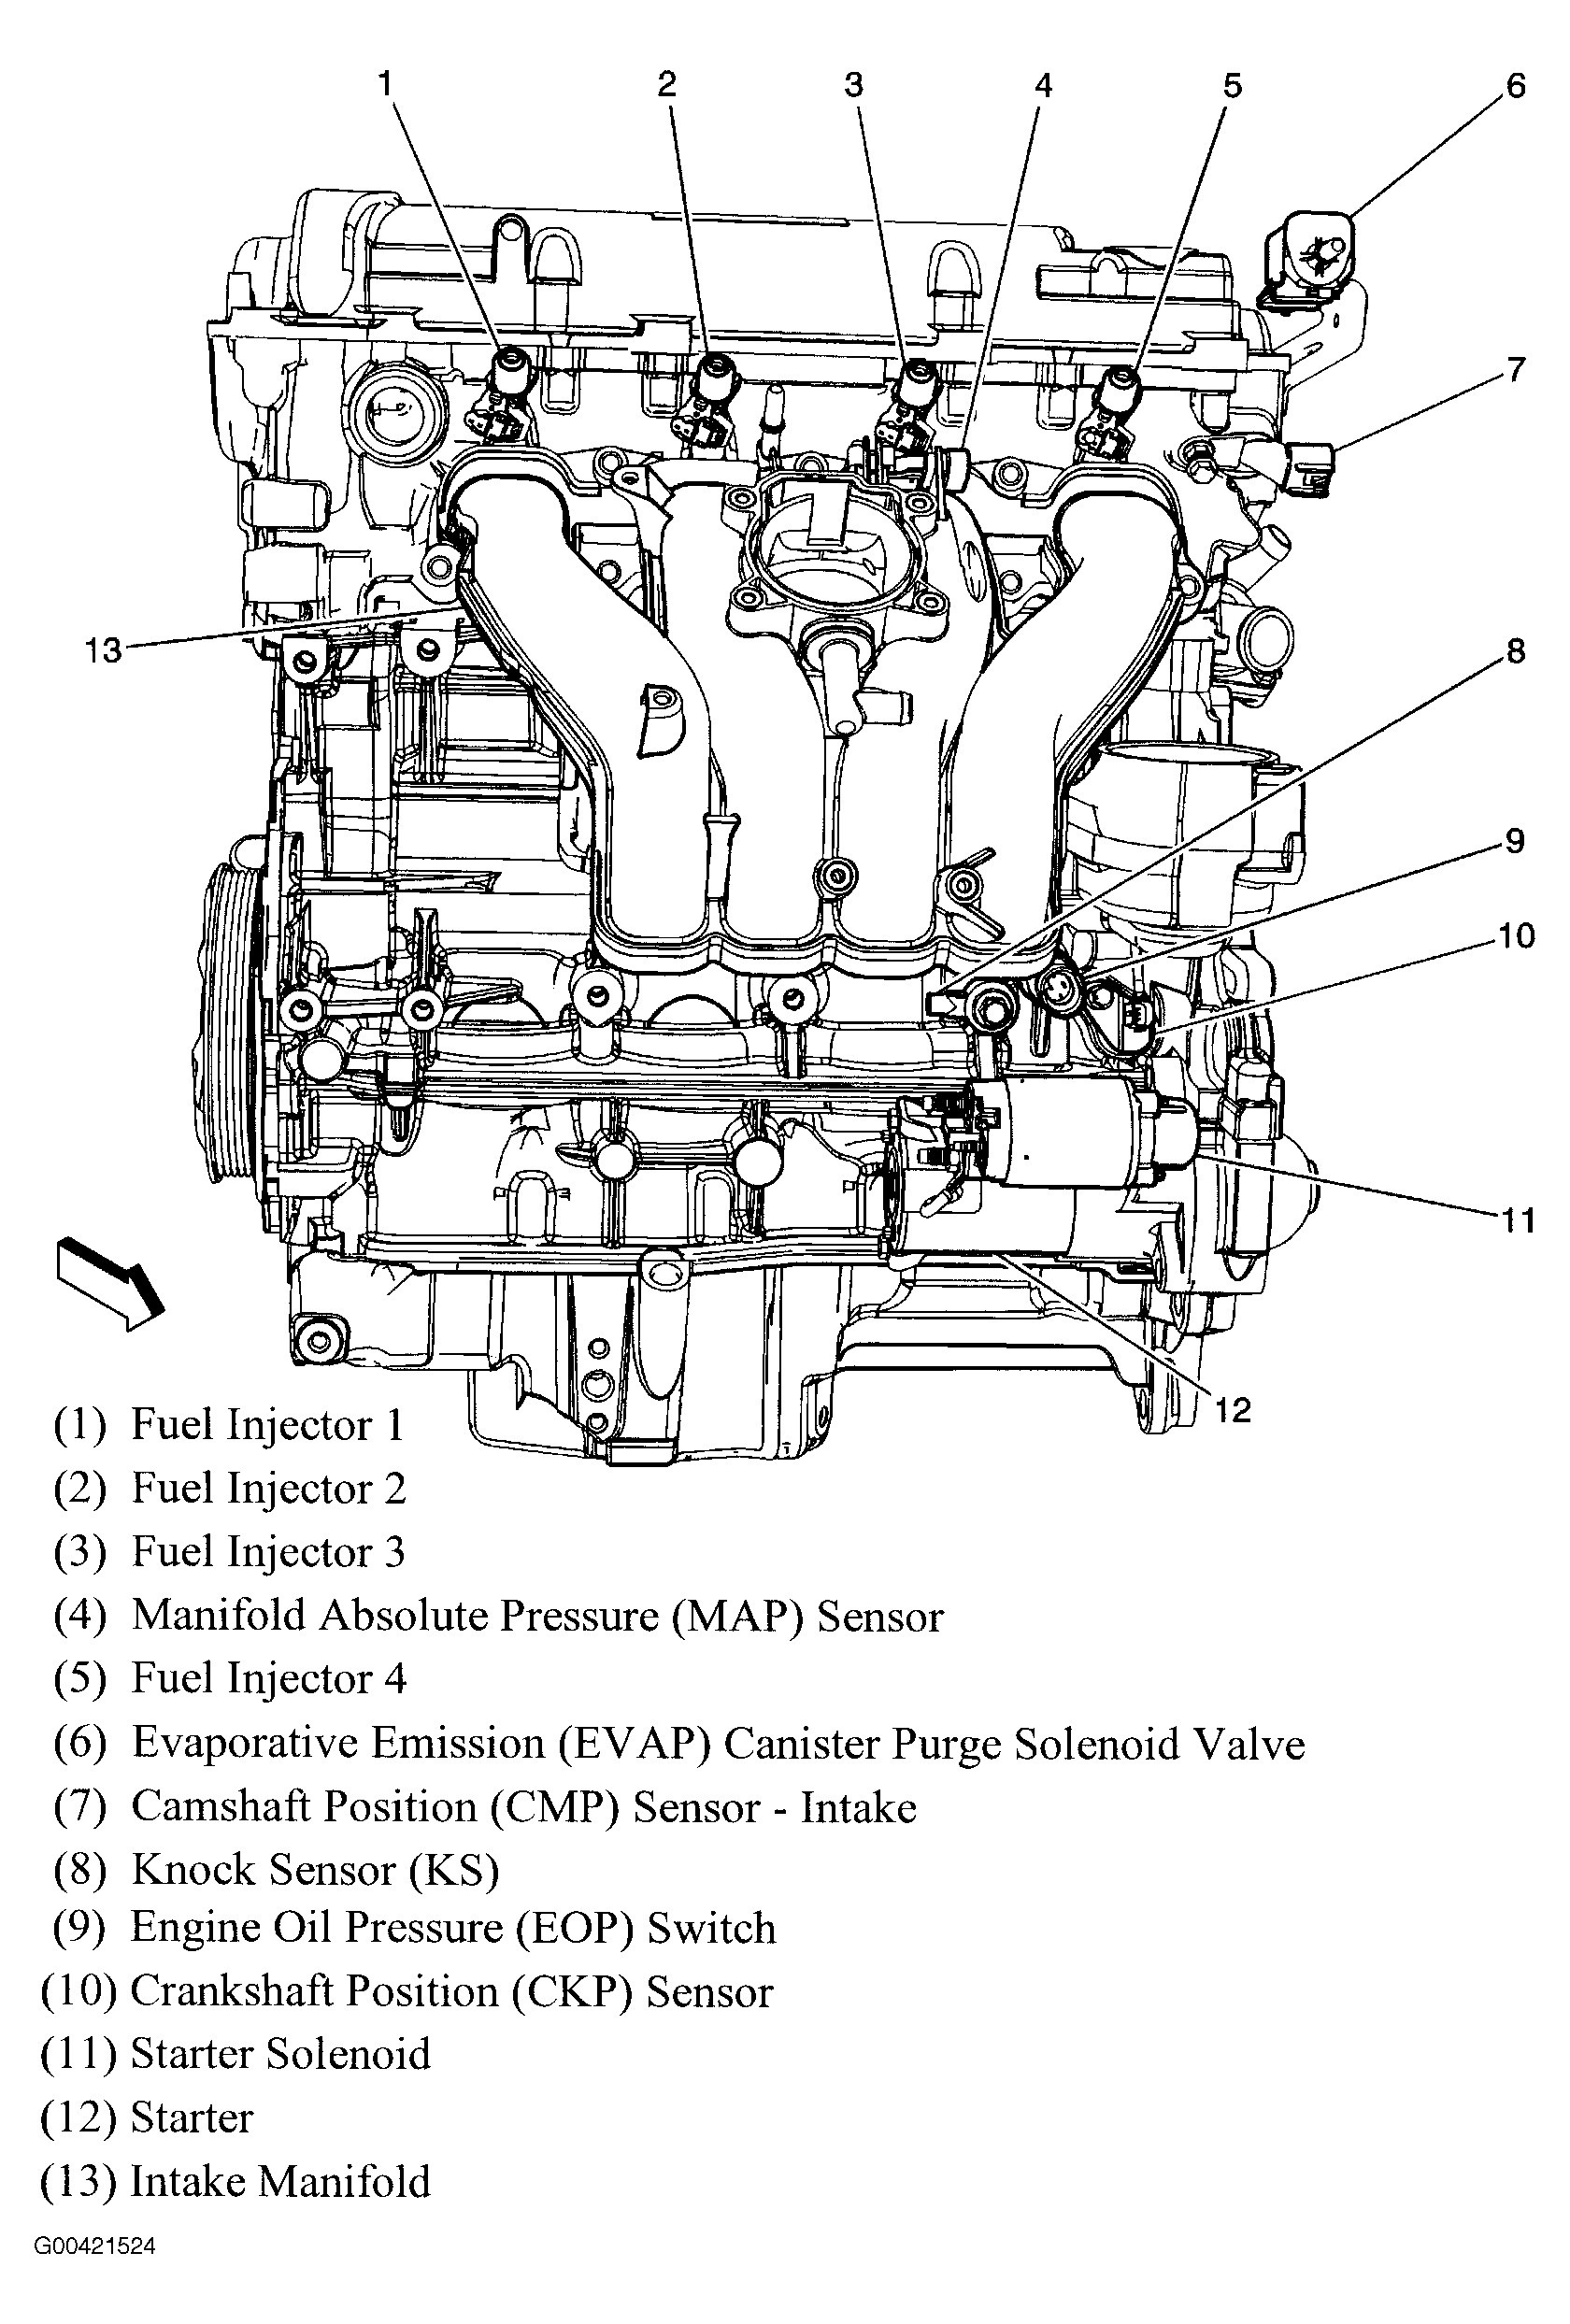 hight resolution of 2000 oldsmobile intrigue engine diagram furthermore 1965 2000 oldsmobile intrigue engine diagram